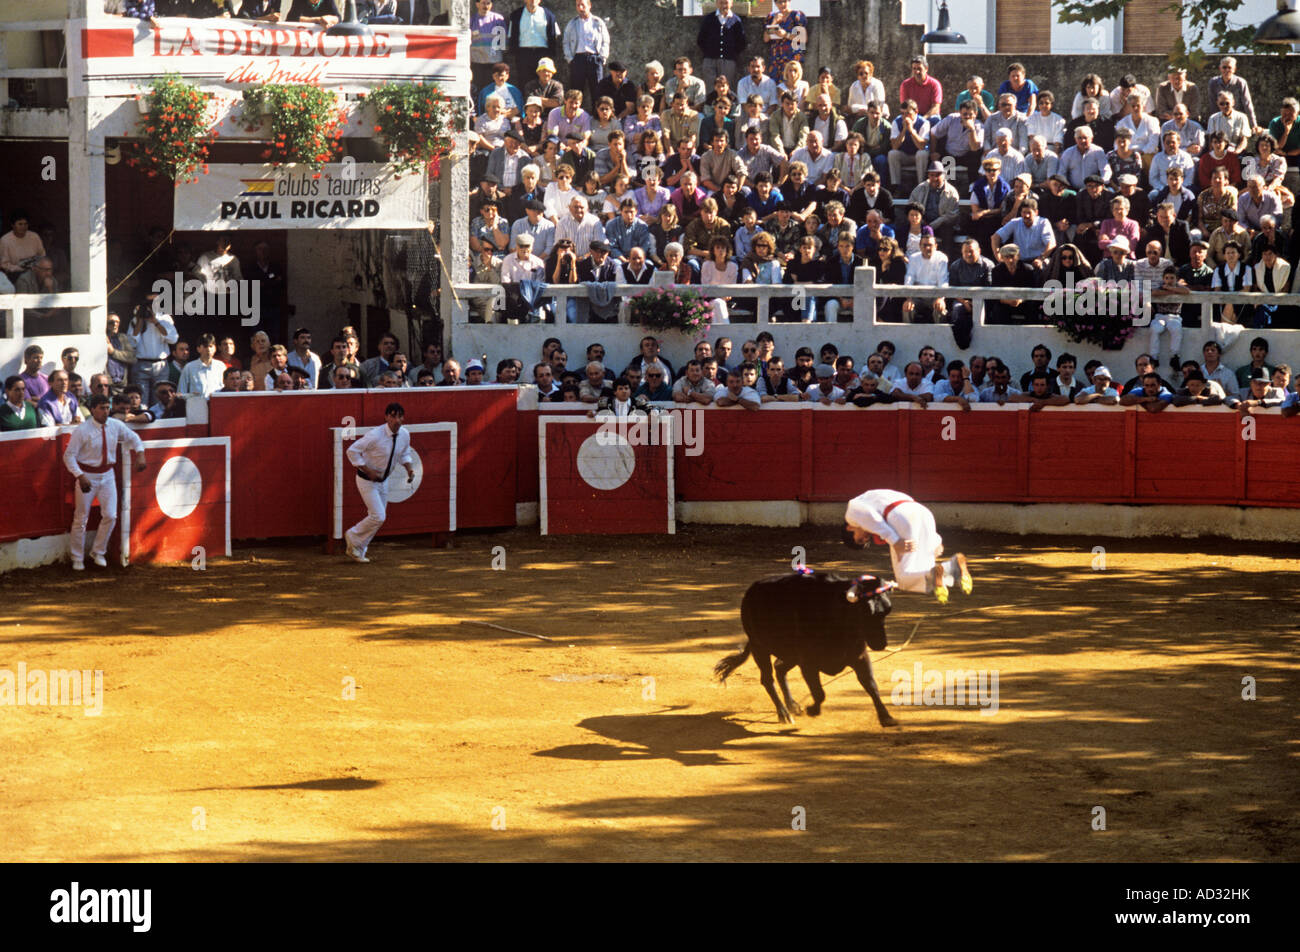 In Course Landaise sporting thrills include athletic young men, sauteurs, leaping or somersaulting over a charging Stock Photo